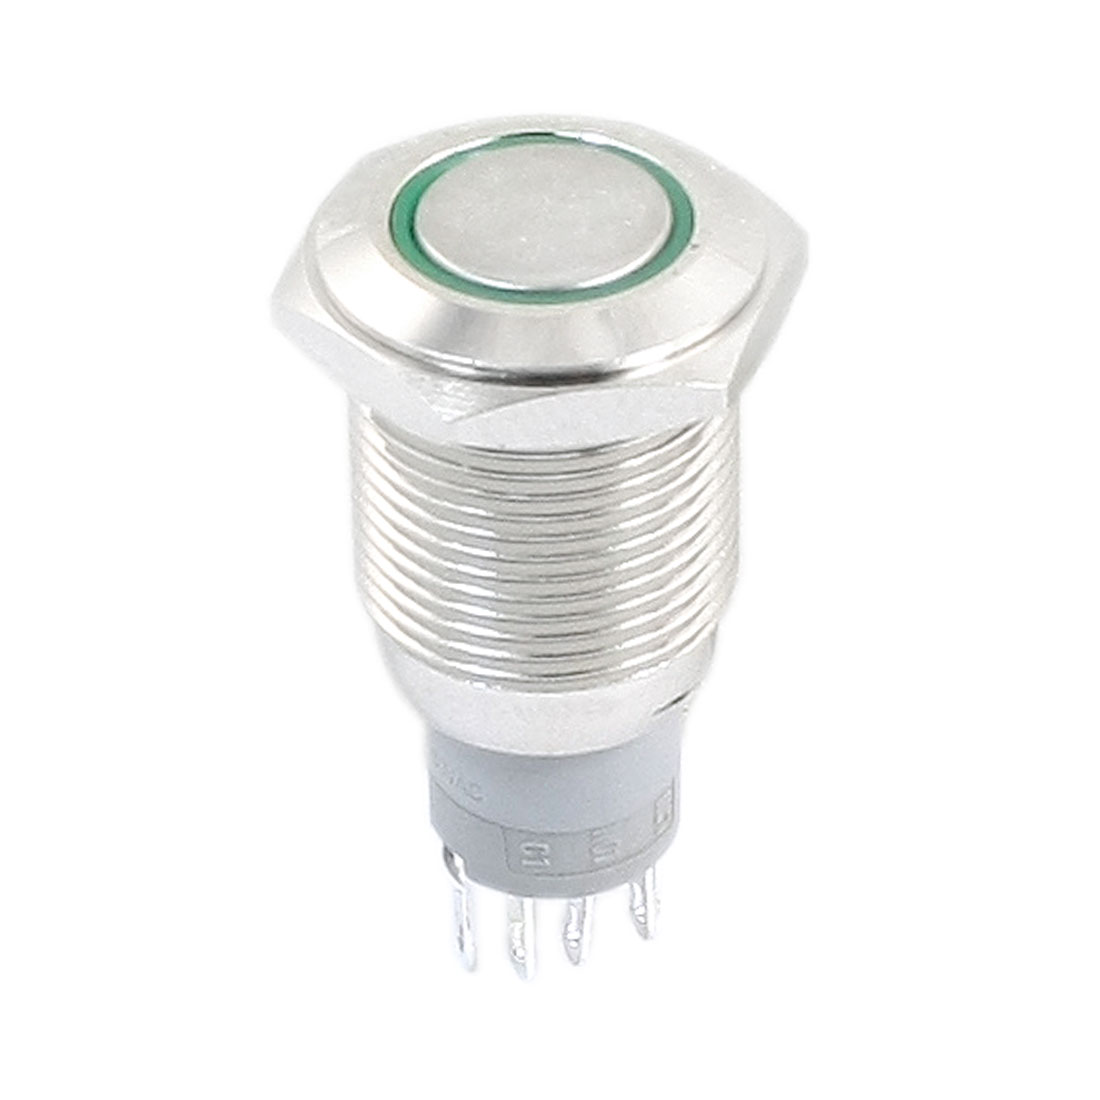 DC 12V Green Indicative LED Light Angel Eye SPDT 1NO 1NC 5 Pins Latching Metal Pushbutton Switch 16mm Thread